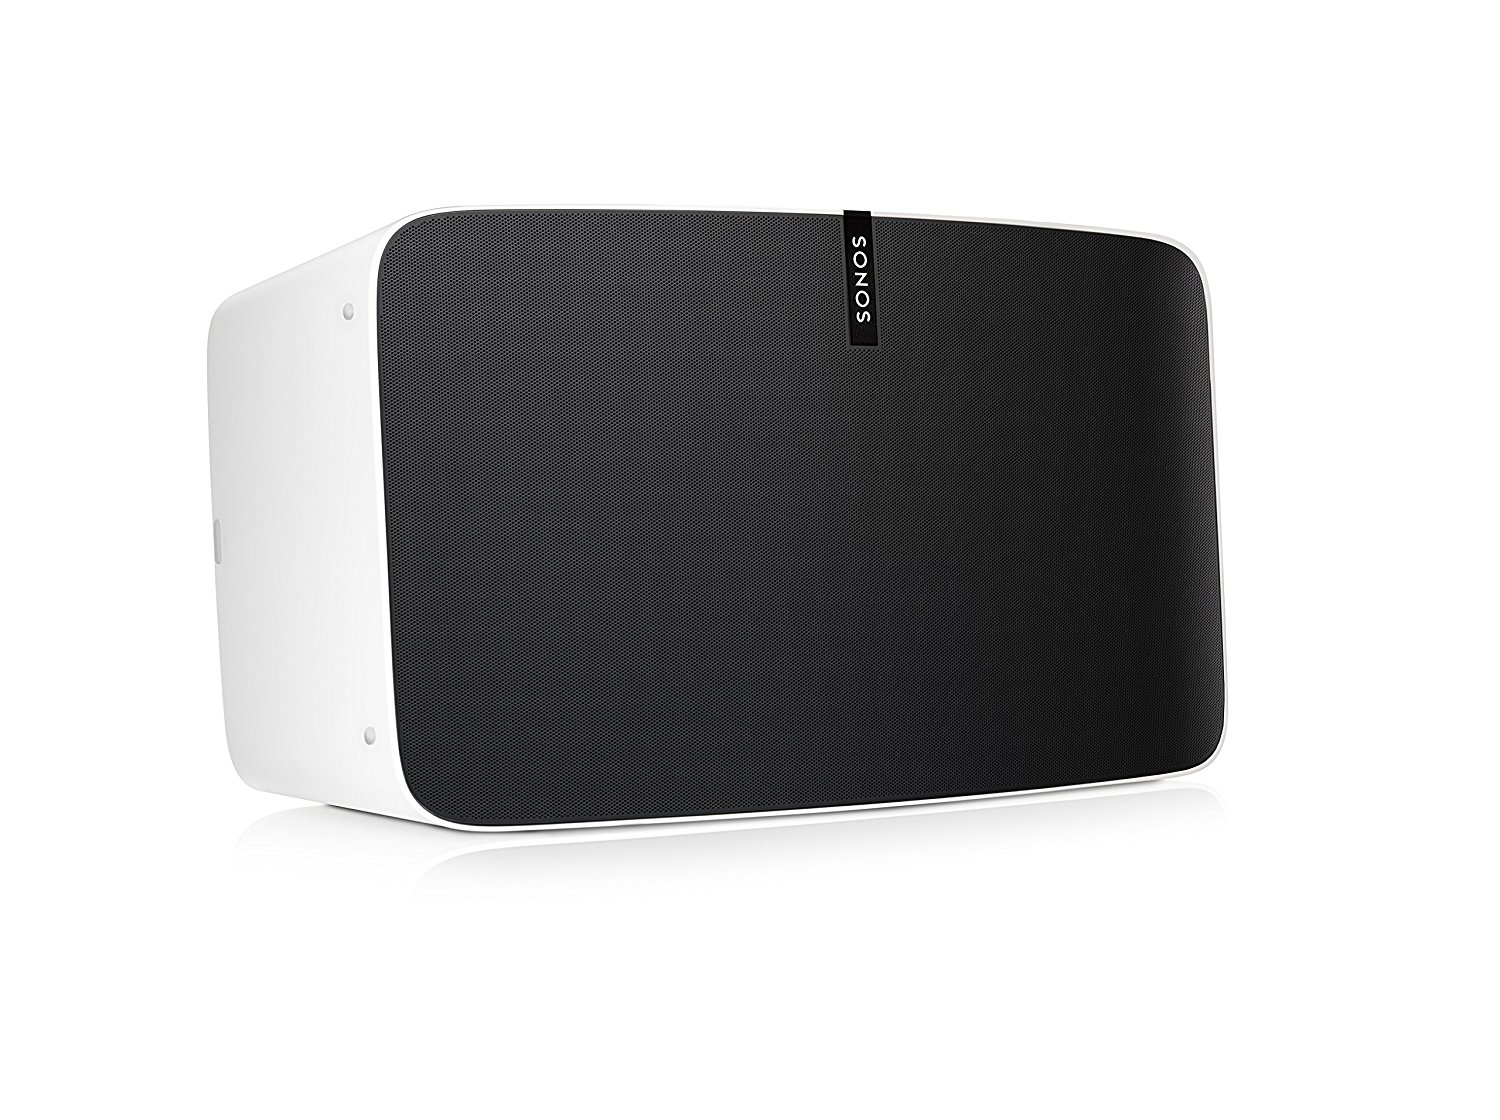 play 5 sonos impianto audio multistanza